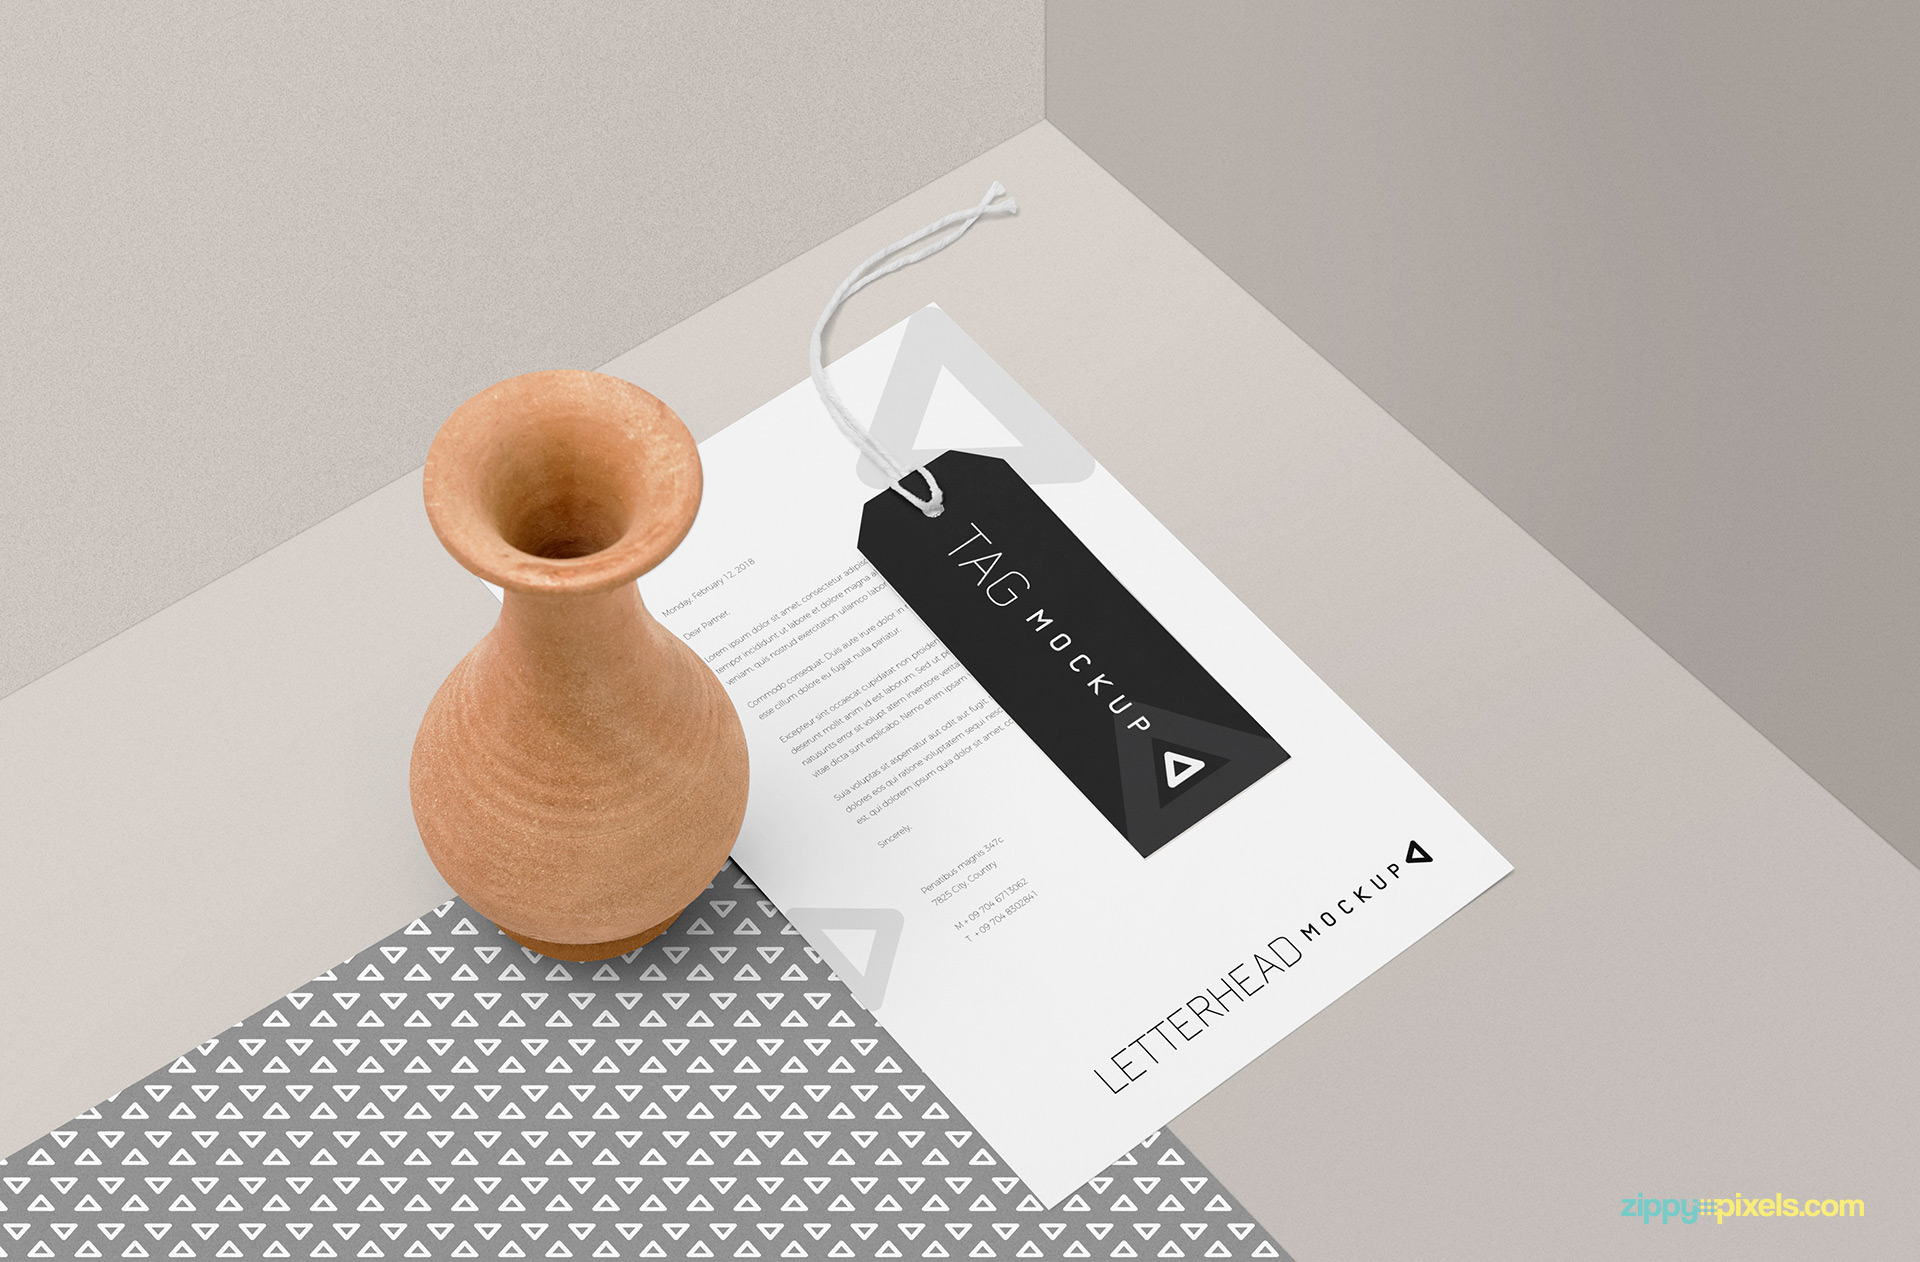 Letterhead mockup PSD free download.